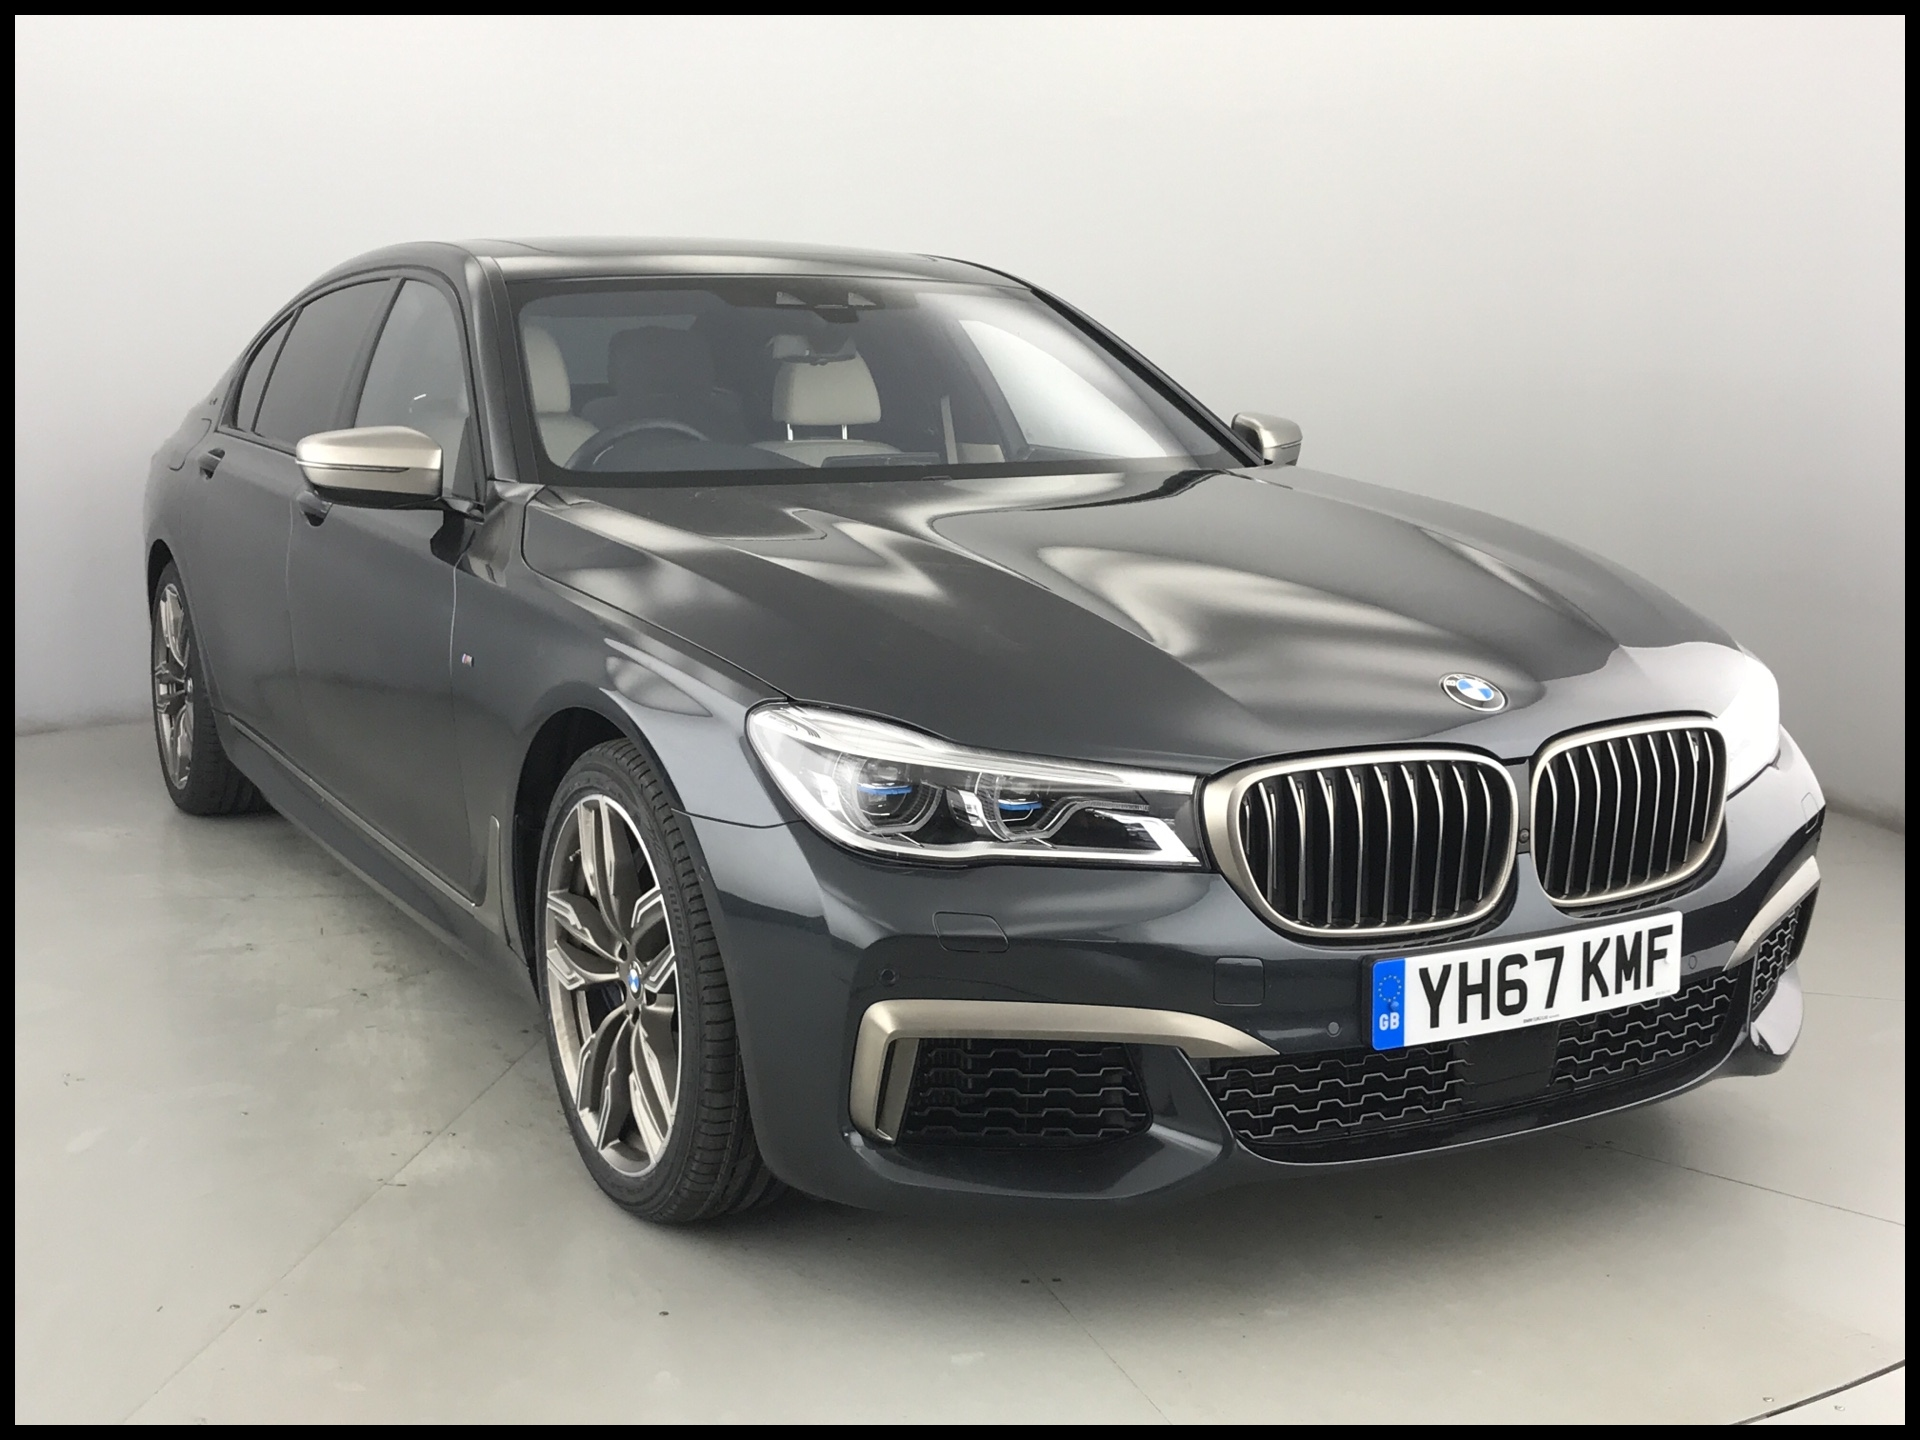 BMW 7 Series M760Li xDrive V12 6 6 4dr 360 still image